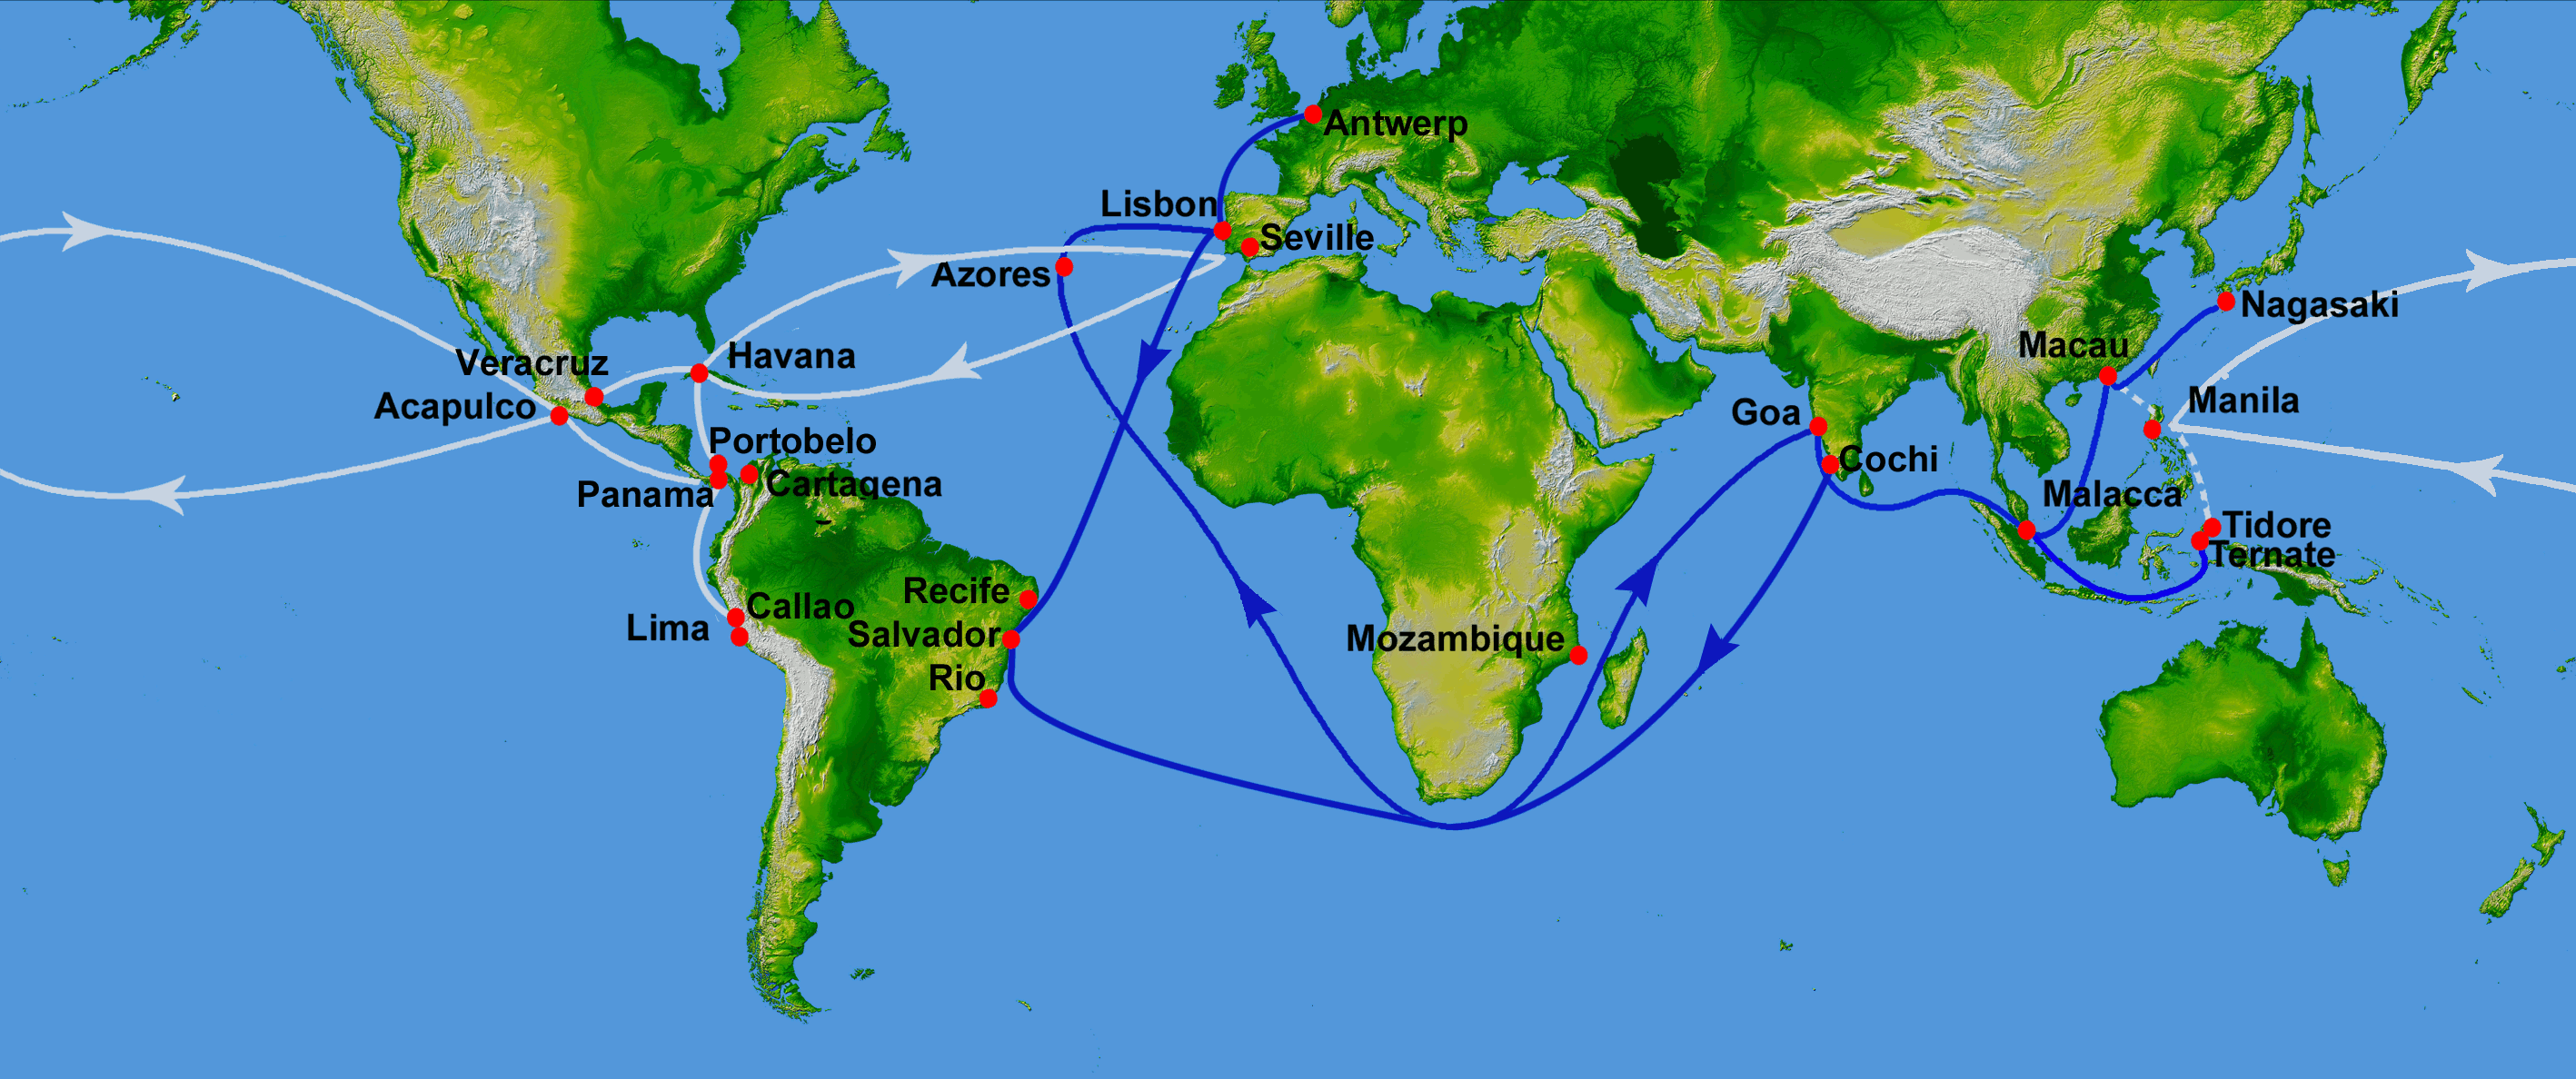 Fileth Century Portuguese Spanish Trade Routespng Wikimedia - Portugal map wikipedia